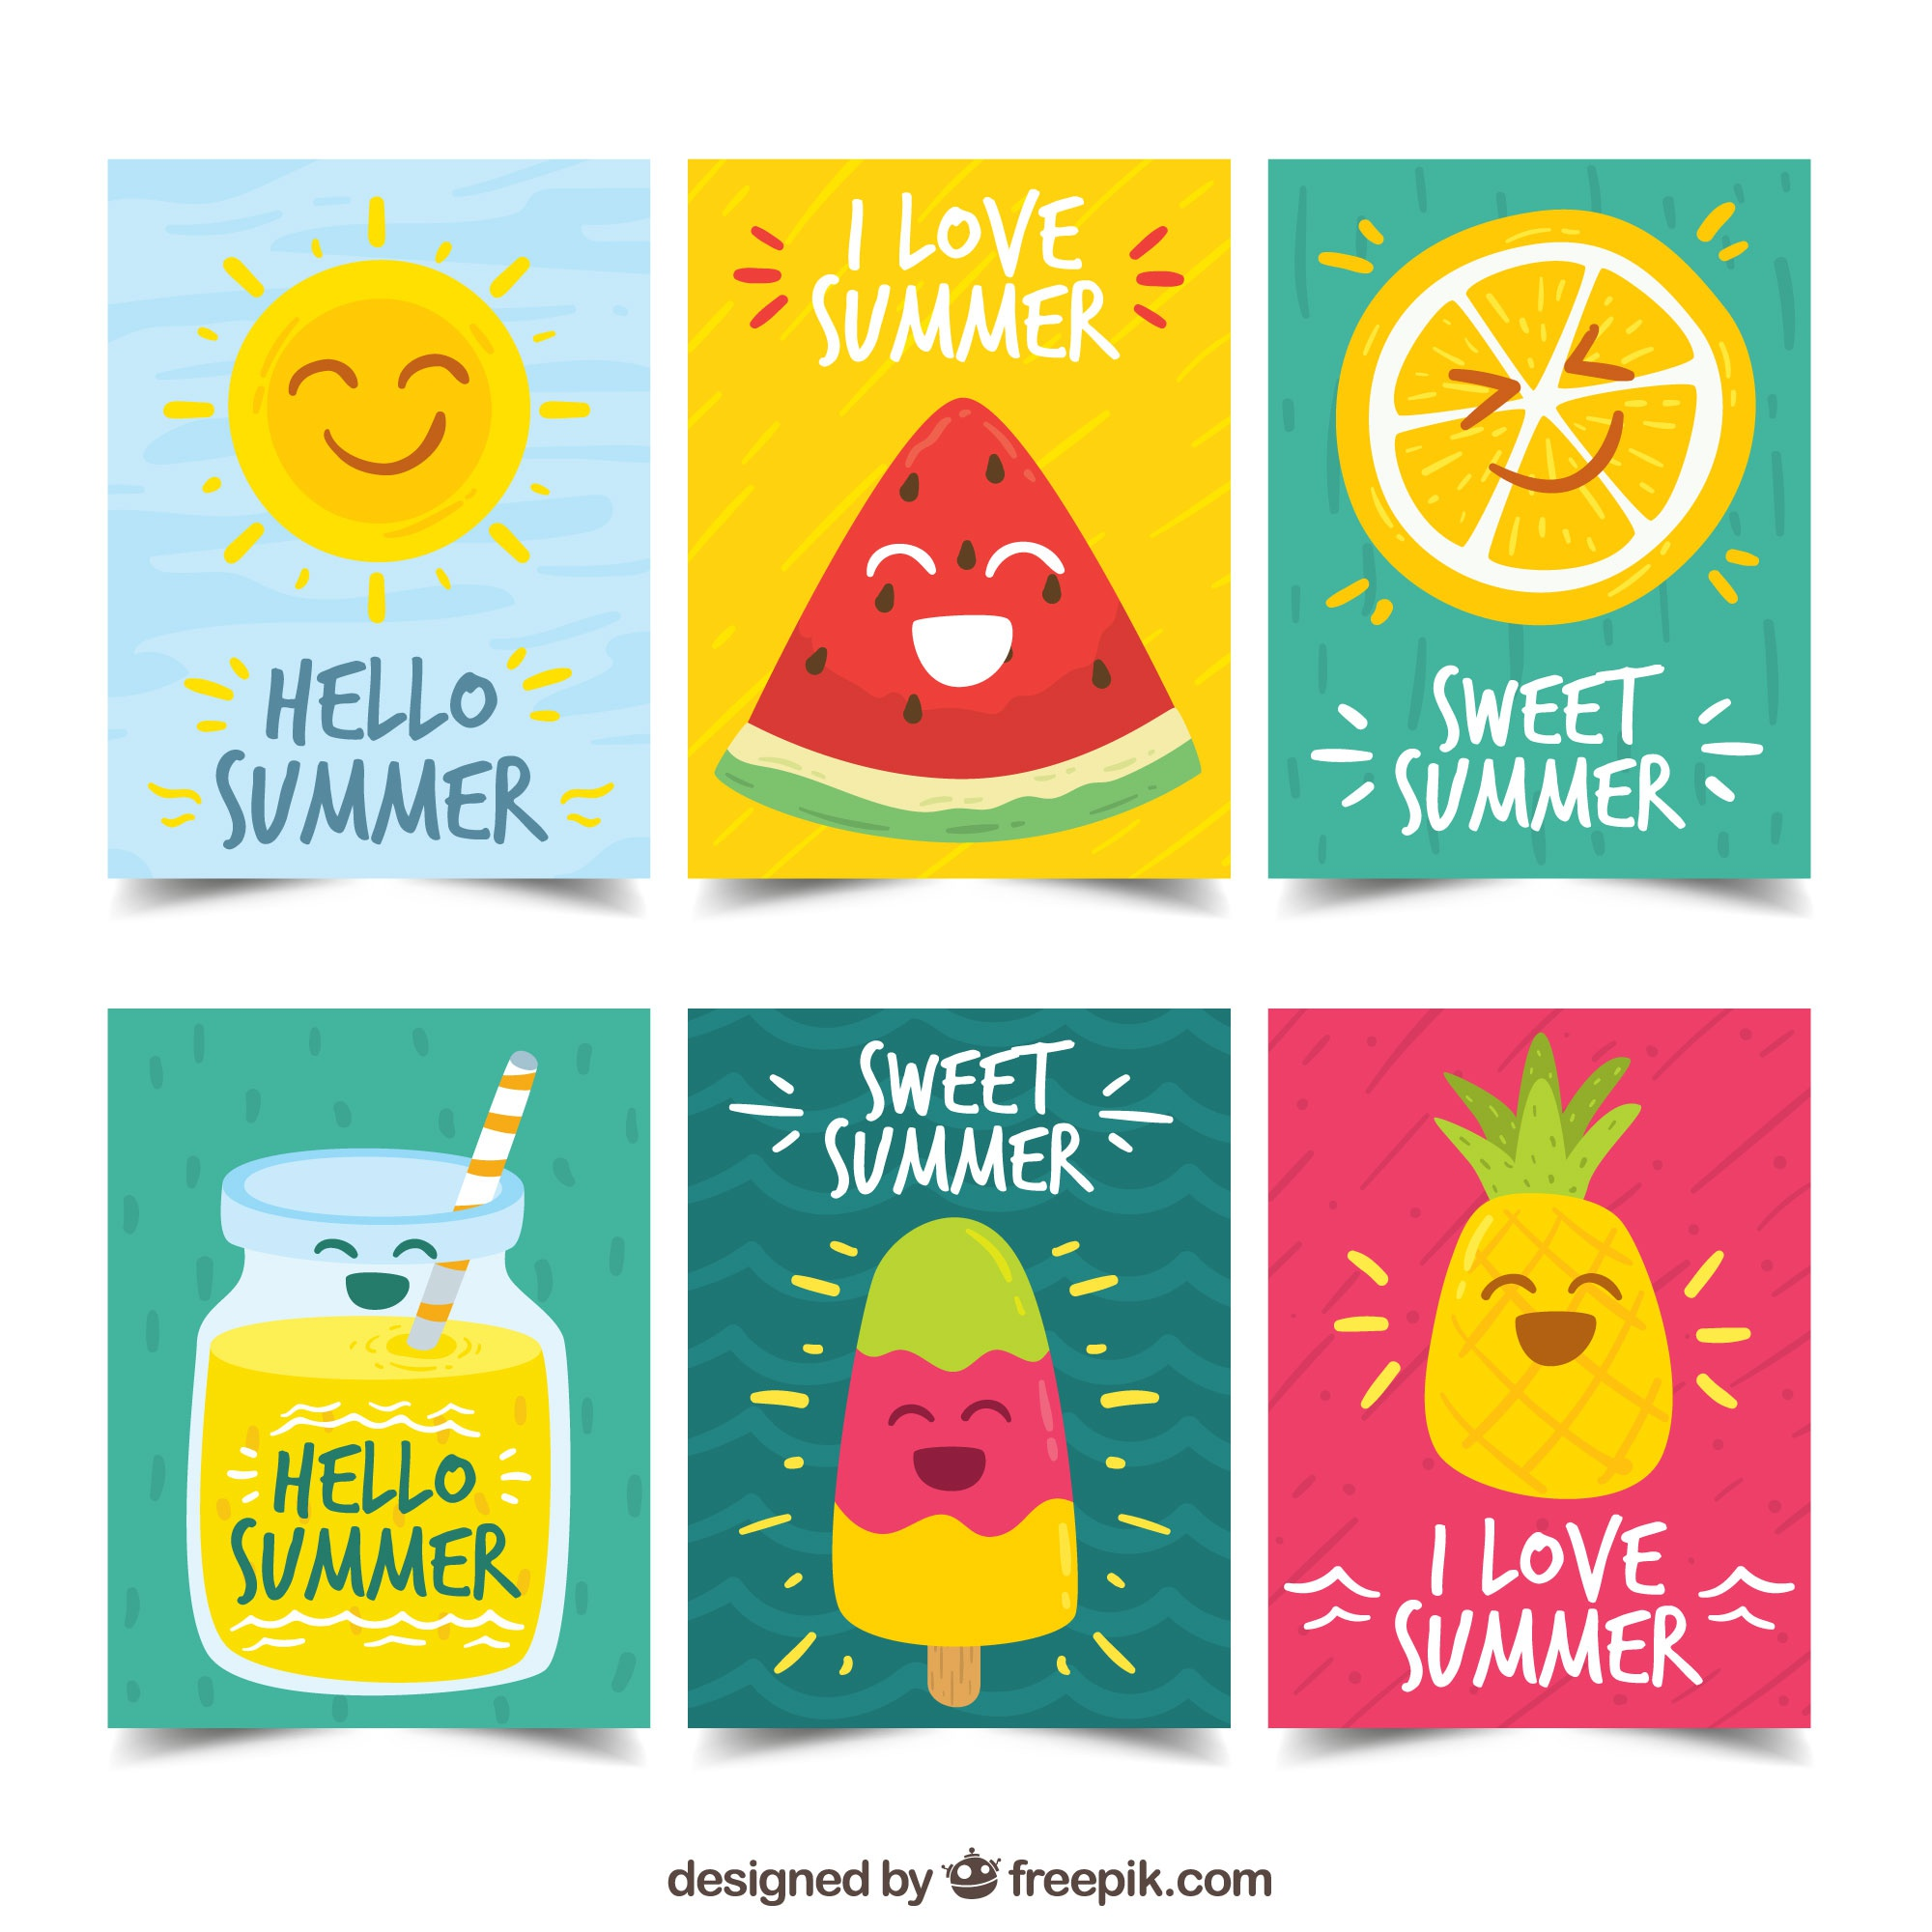 Fun summer cards with characters